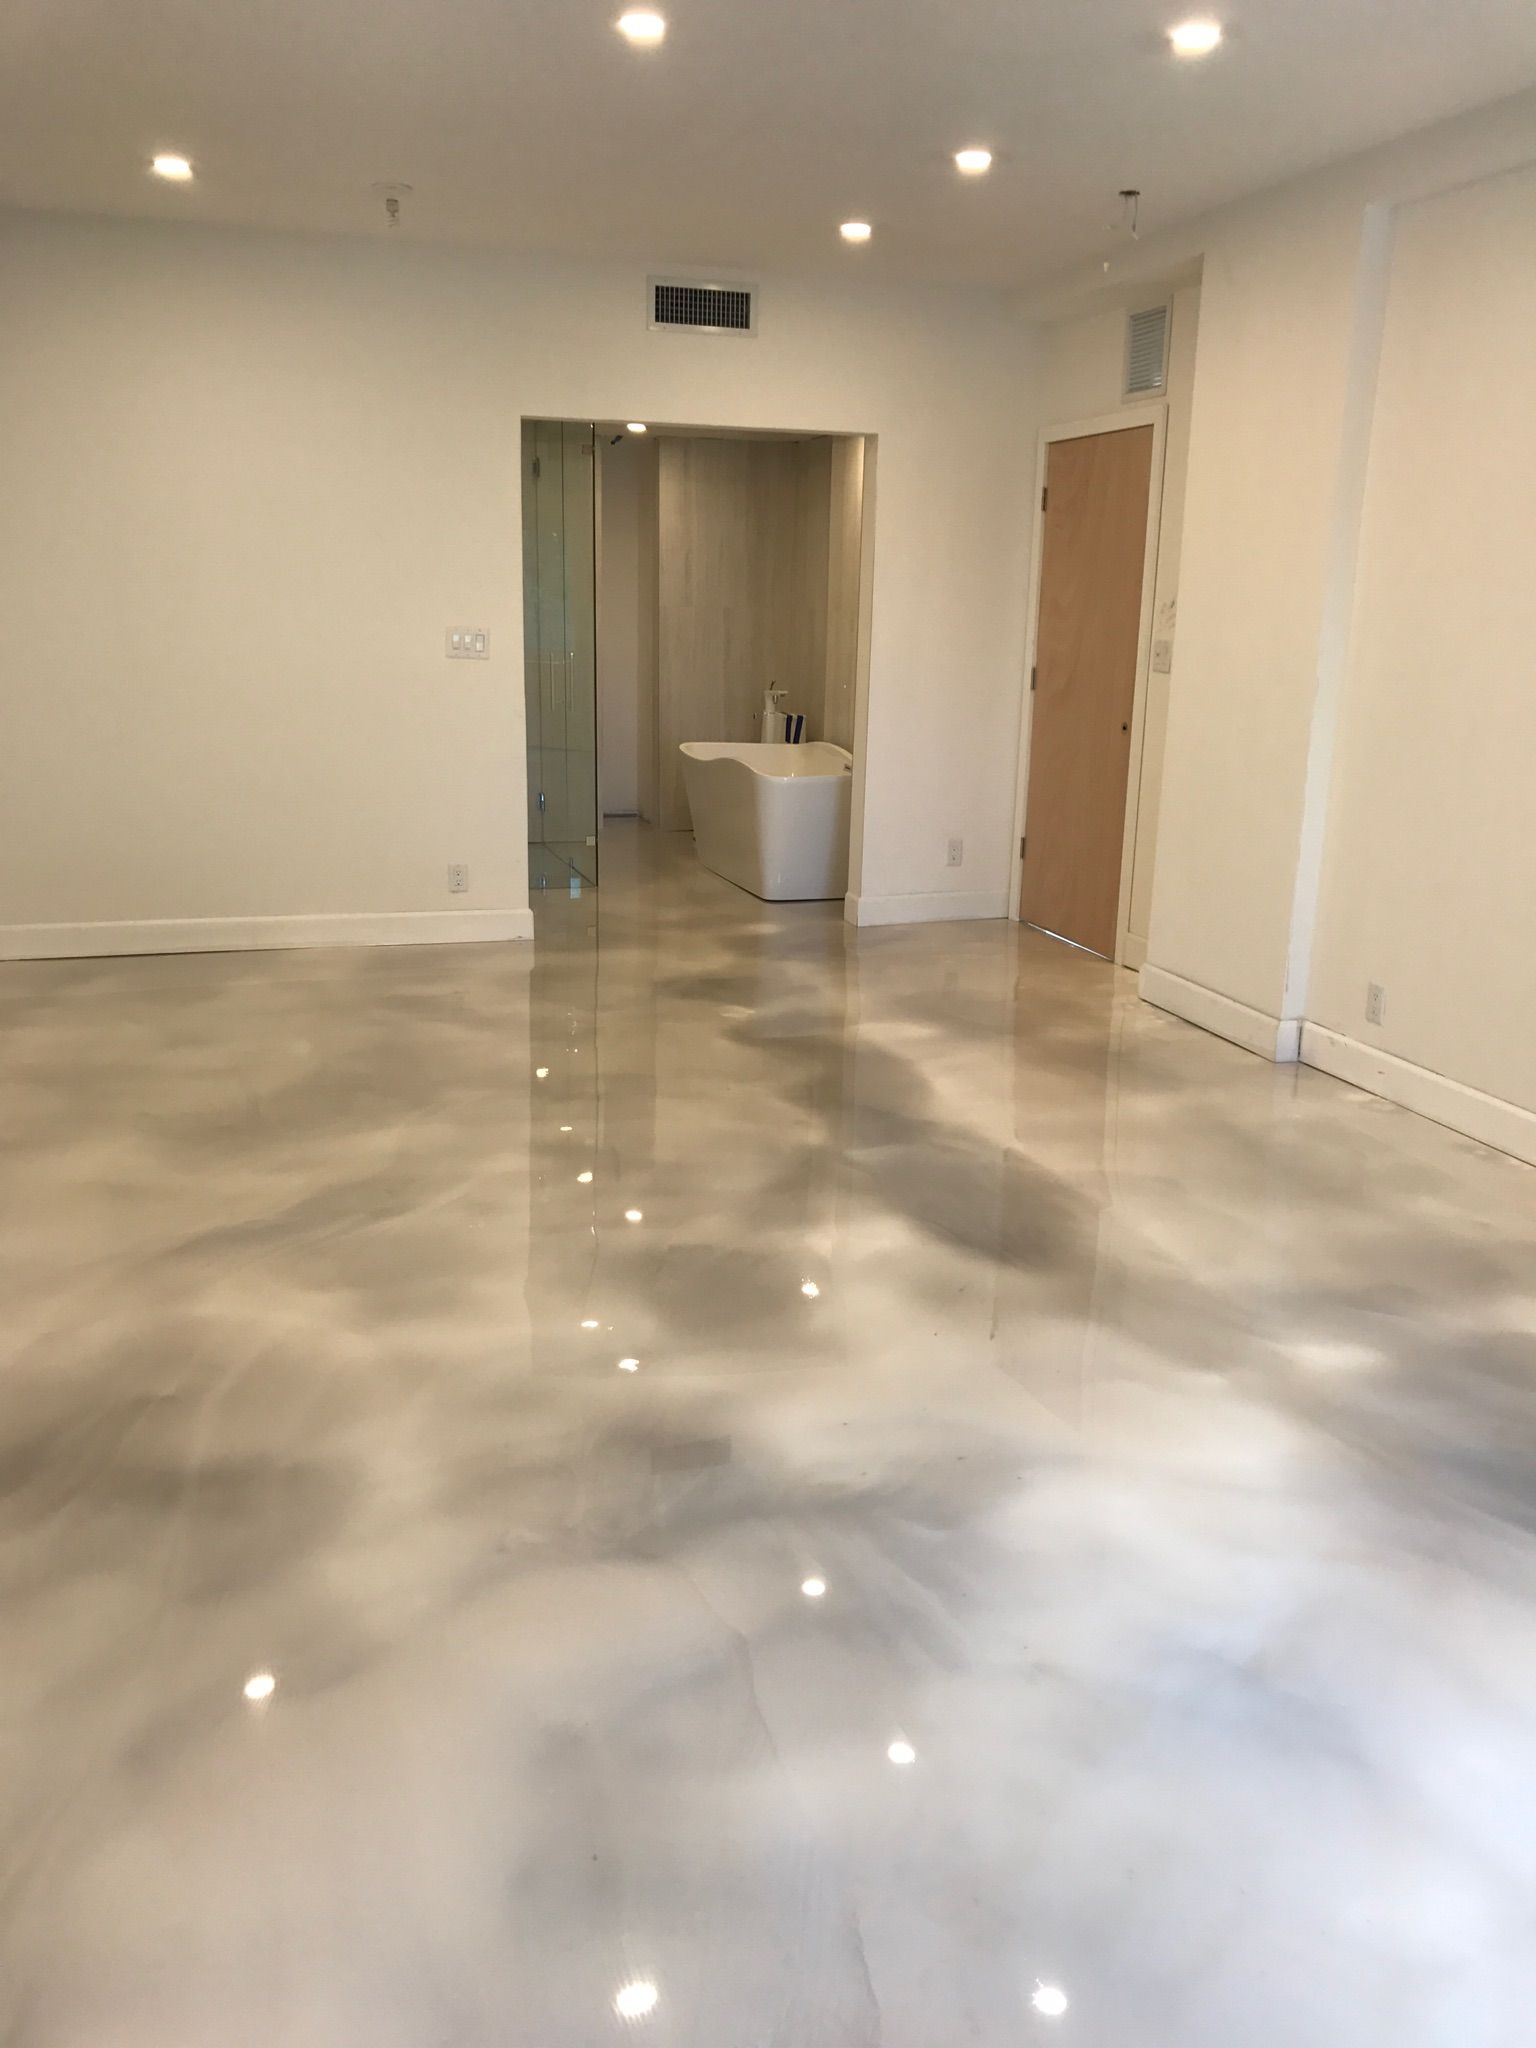 Job By Satin Finish Concrete Of Fort Lauderdale Fl Visit Our Website For Details We Specialize In Epoxy Polished Concrete Me Terrazzo Flooring Epoxy Floor